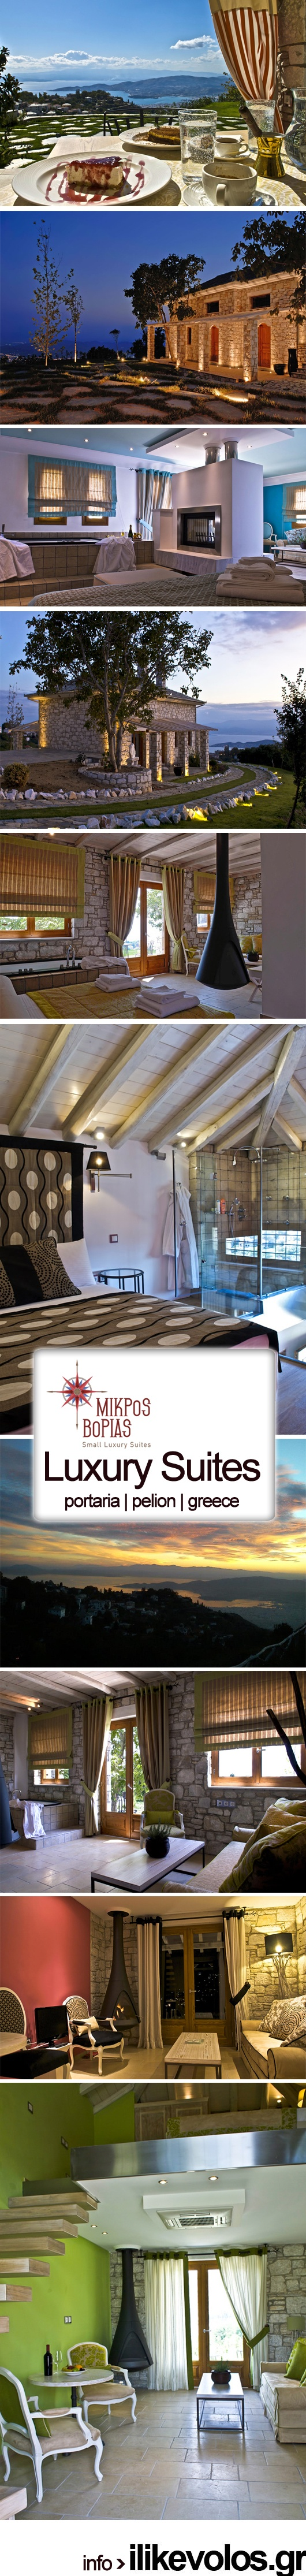 MIKROS VORIAS | Small Luxury Suites in Portaria, Pelion